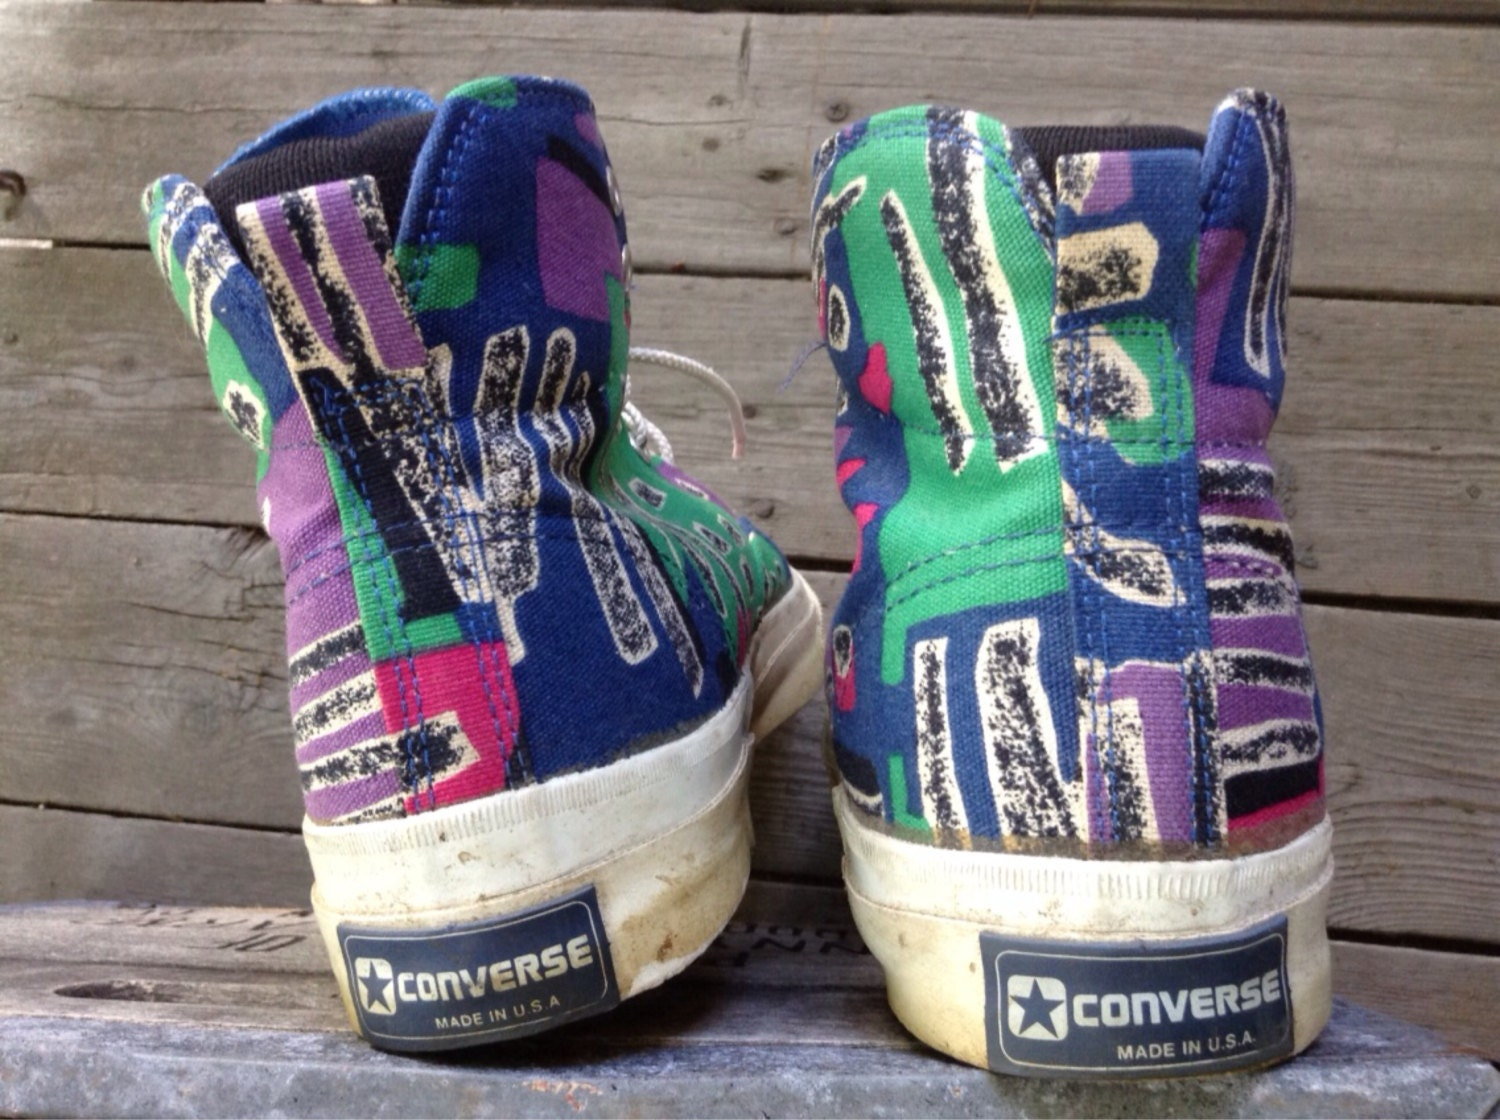 6ec77bae8bce Vintage 1980 s Converse Skidgrip Made in USA Abstract Pattern ...